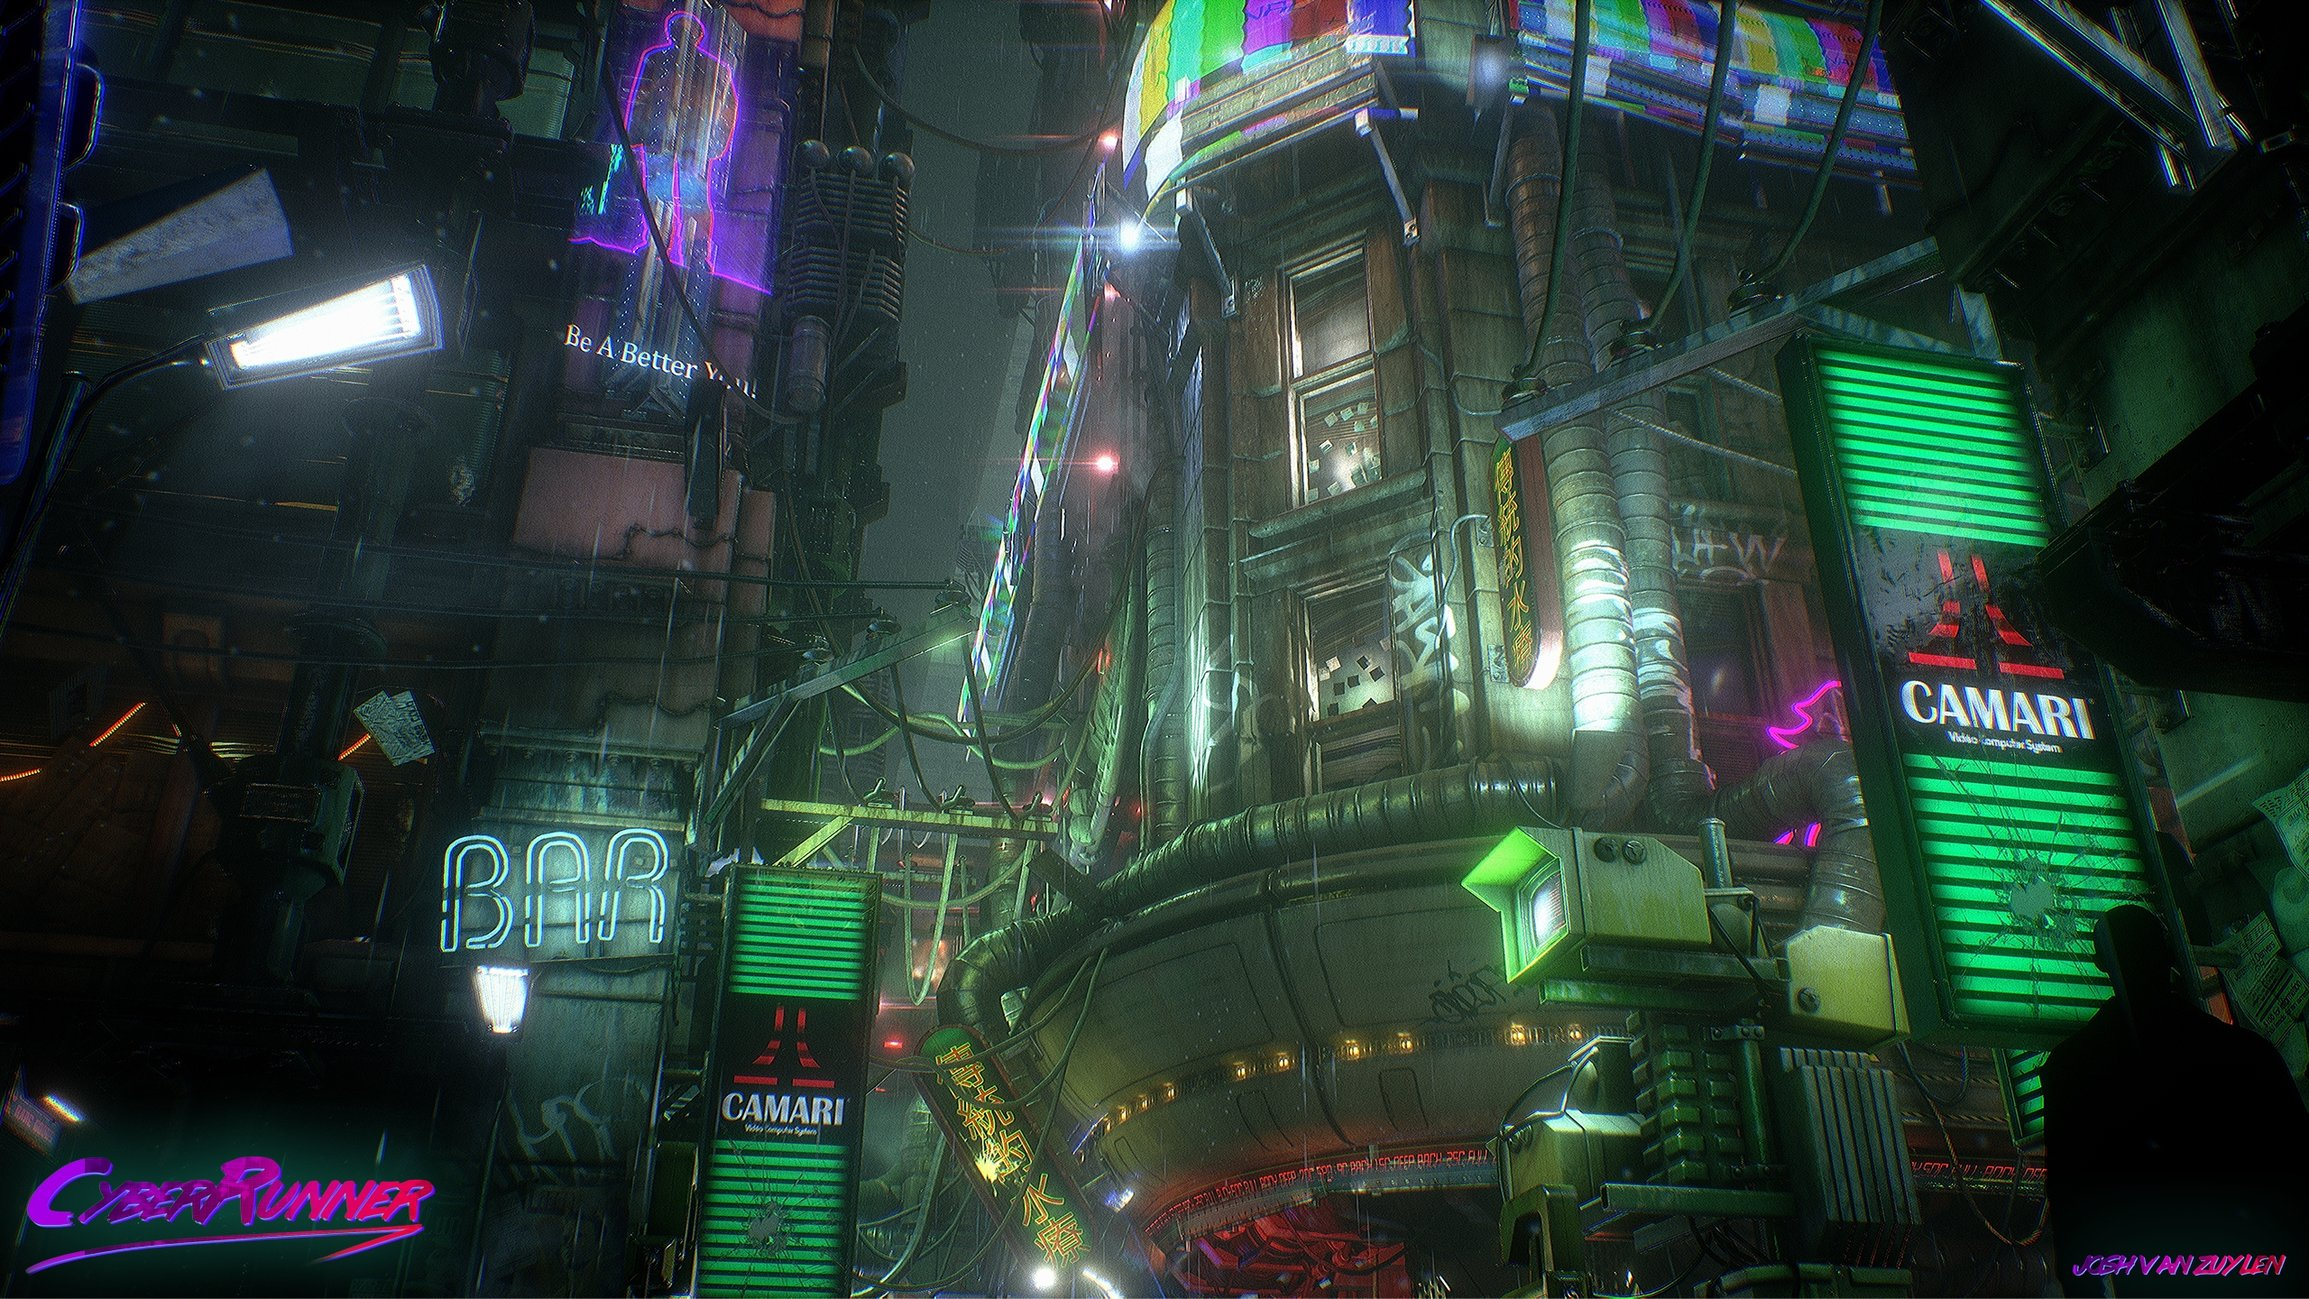 Haterade Tshirt likewise Customdesigns together with Blade Runner Cyberpunk Streets as well Difference Between Bathroom And Kitchen Tiles in addition Crosshair Clipart Black Crosshair Th. on small home designs